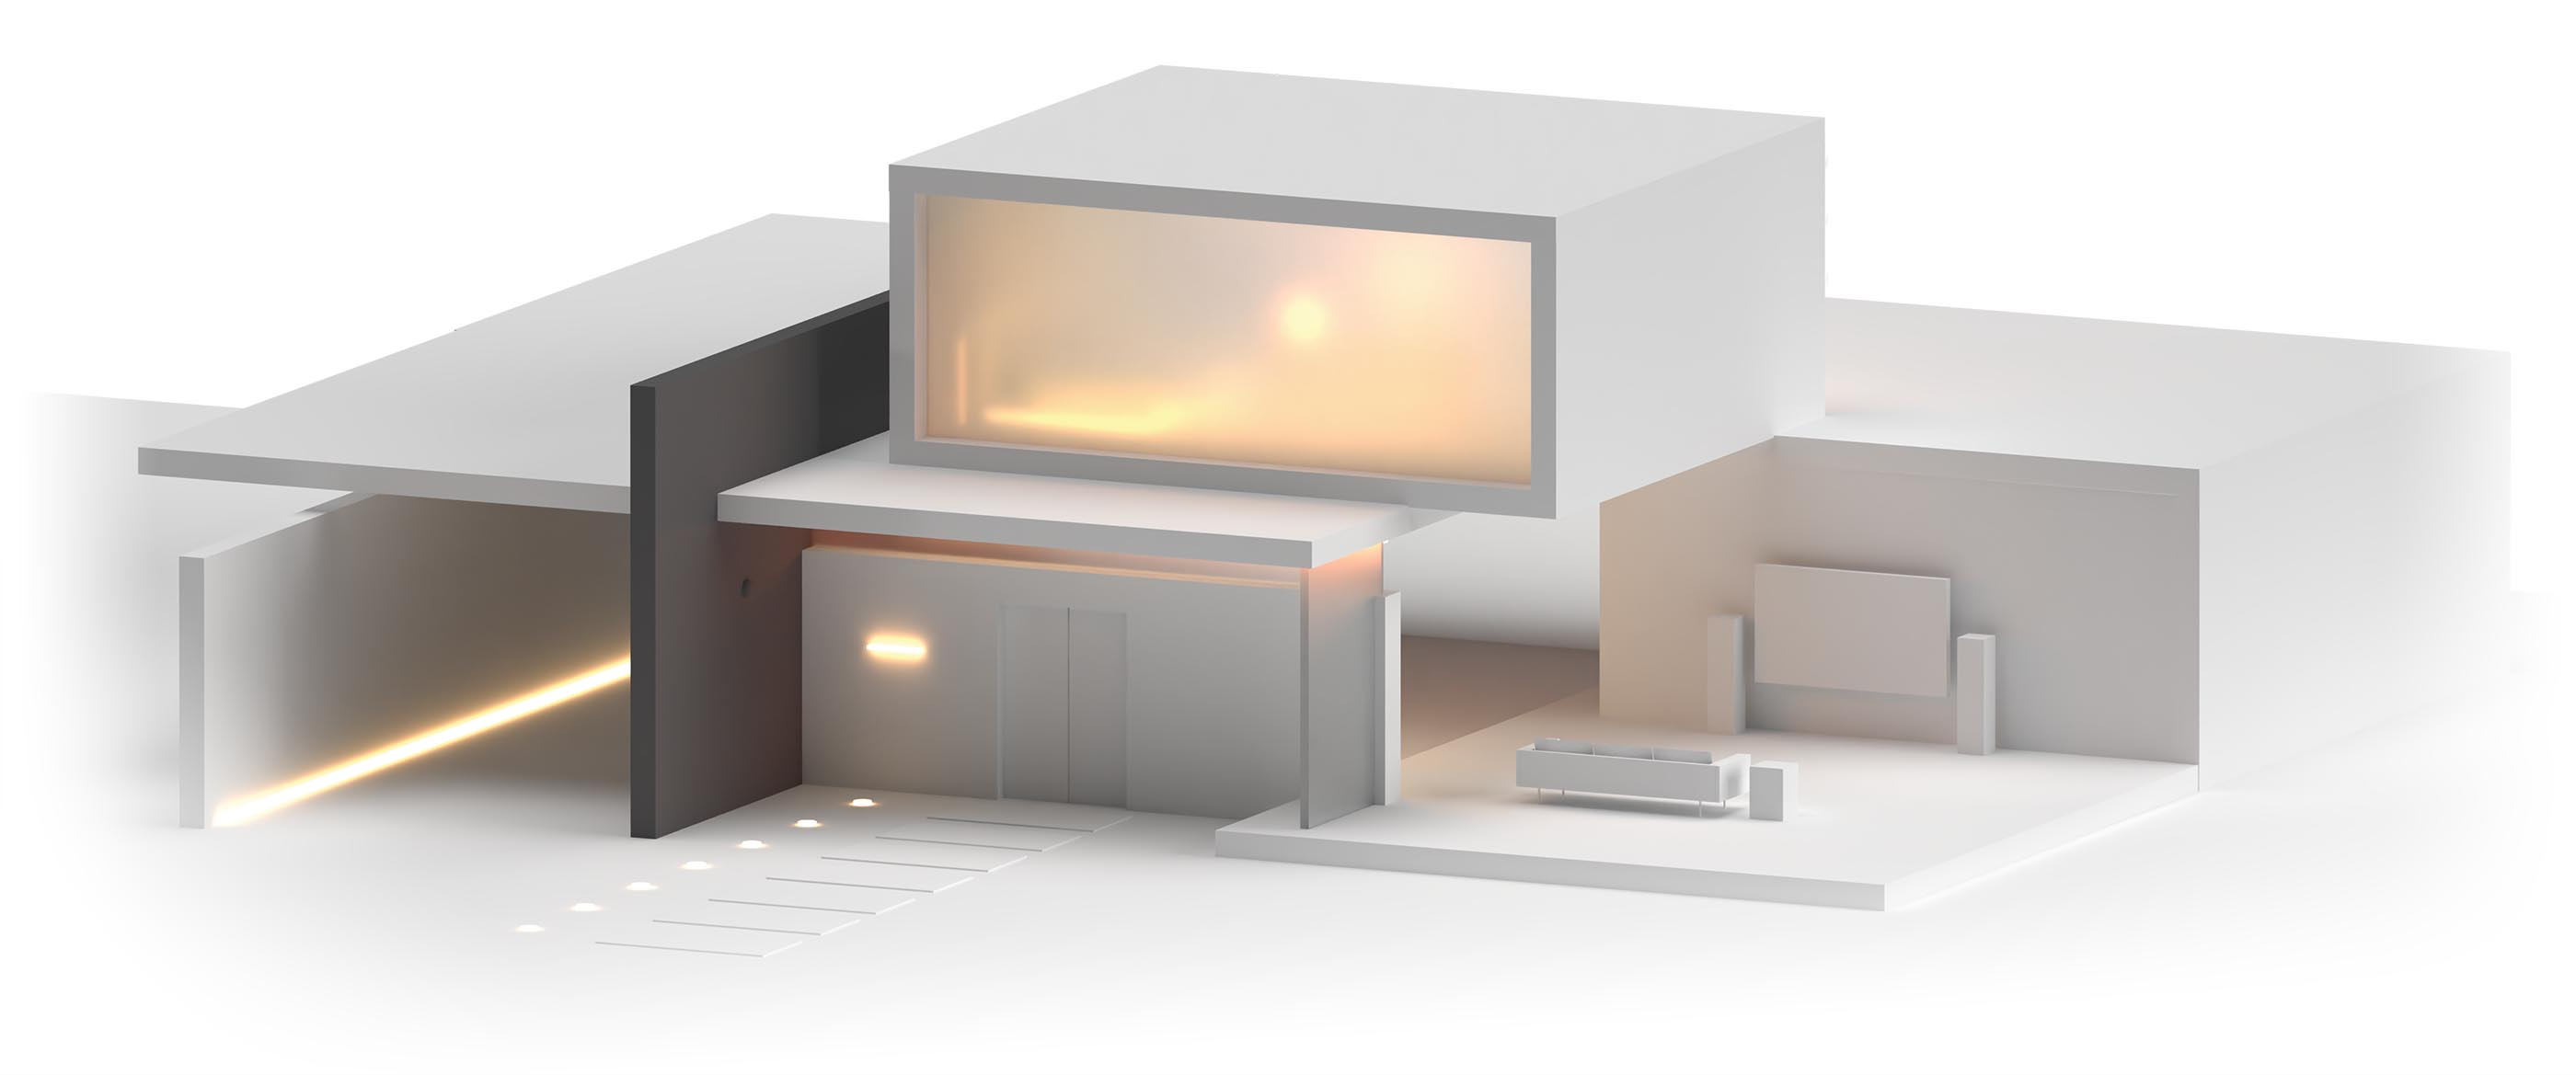 A 3D render of a high end house cutaway to show the living room.